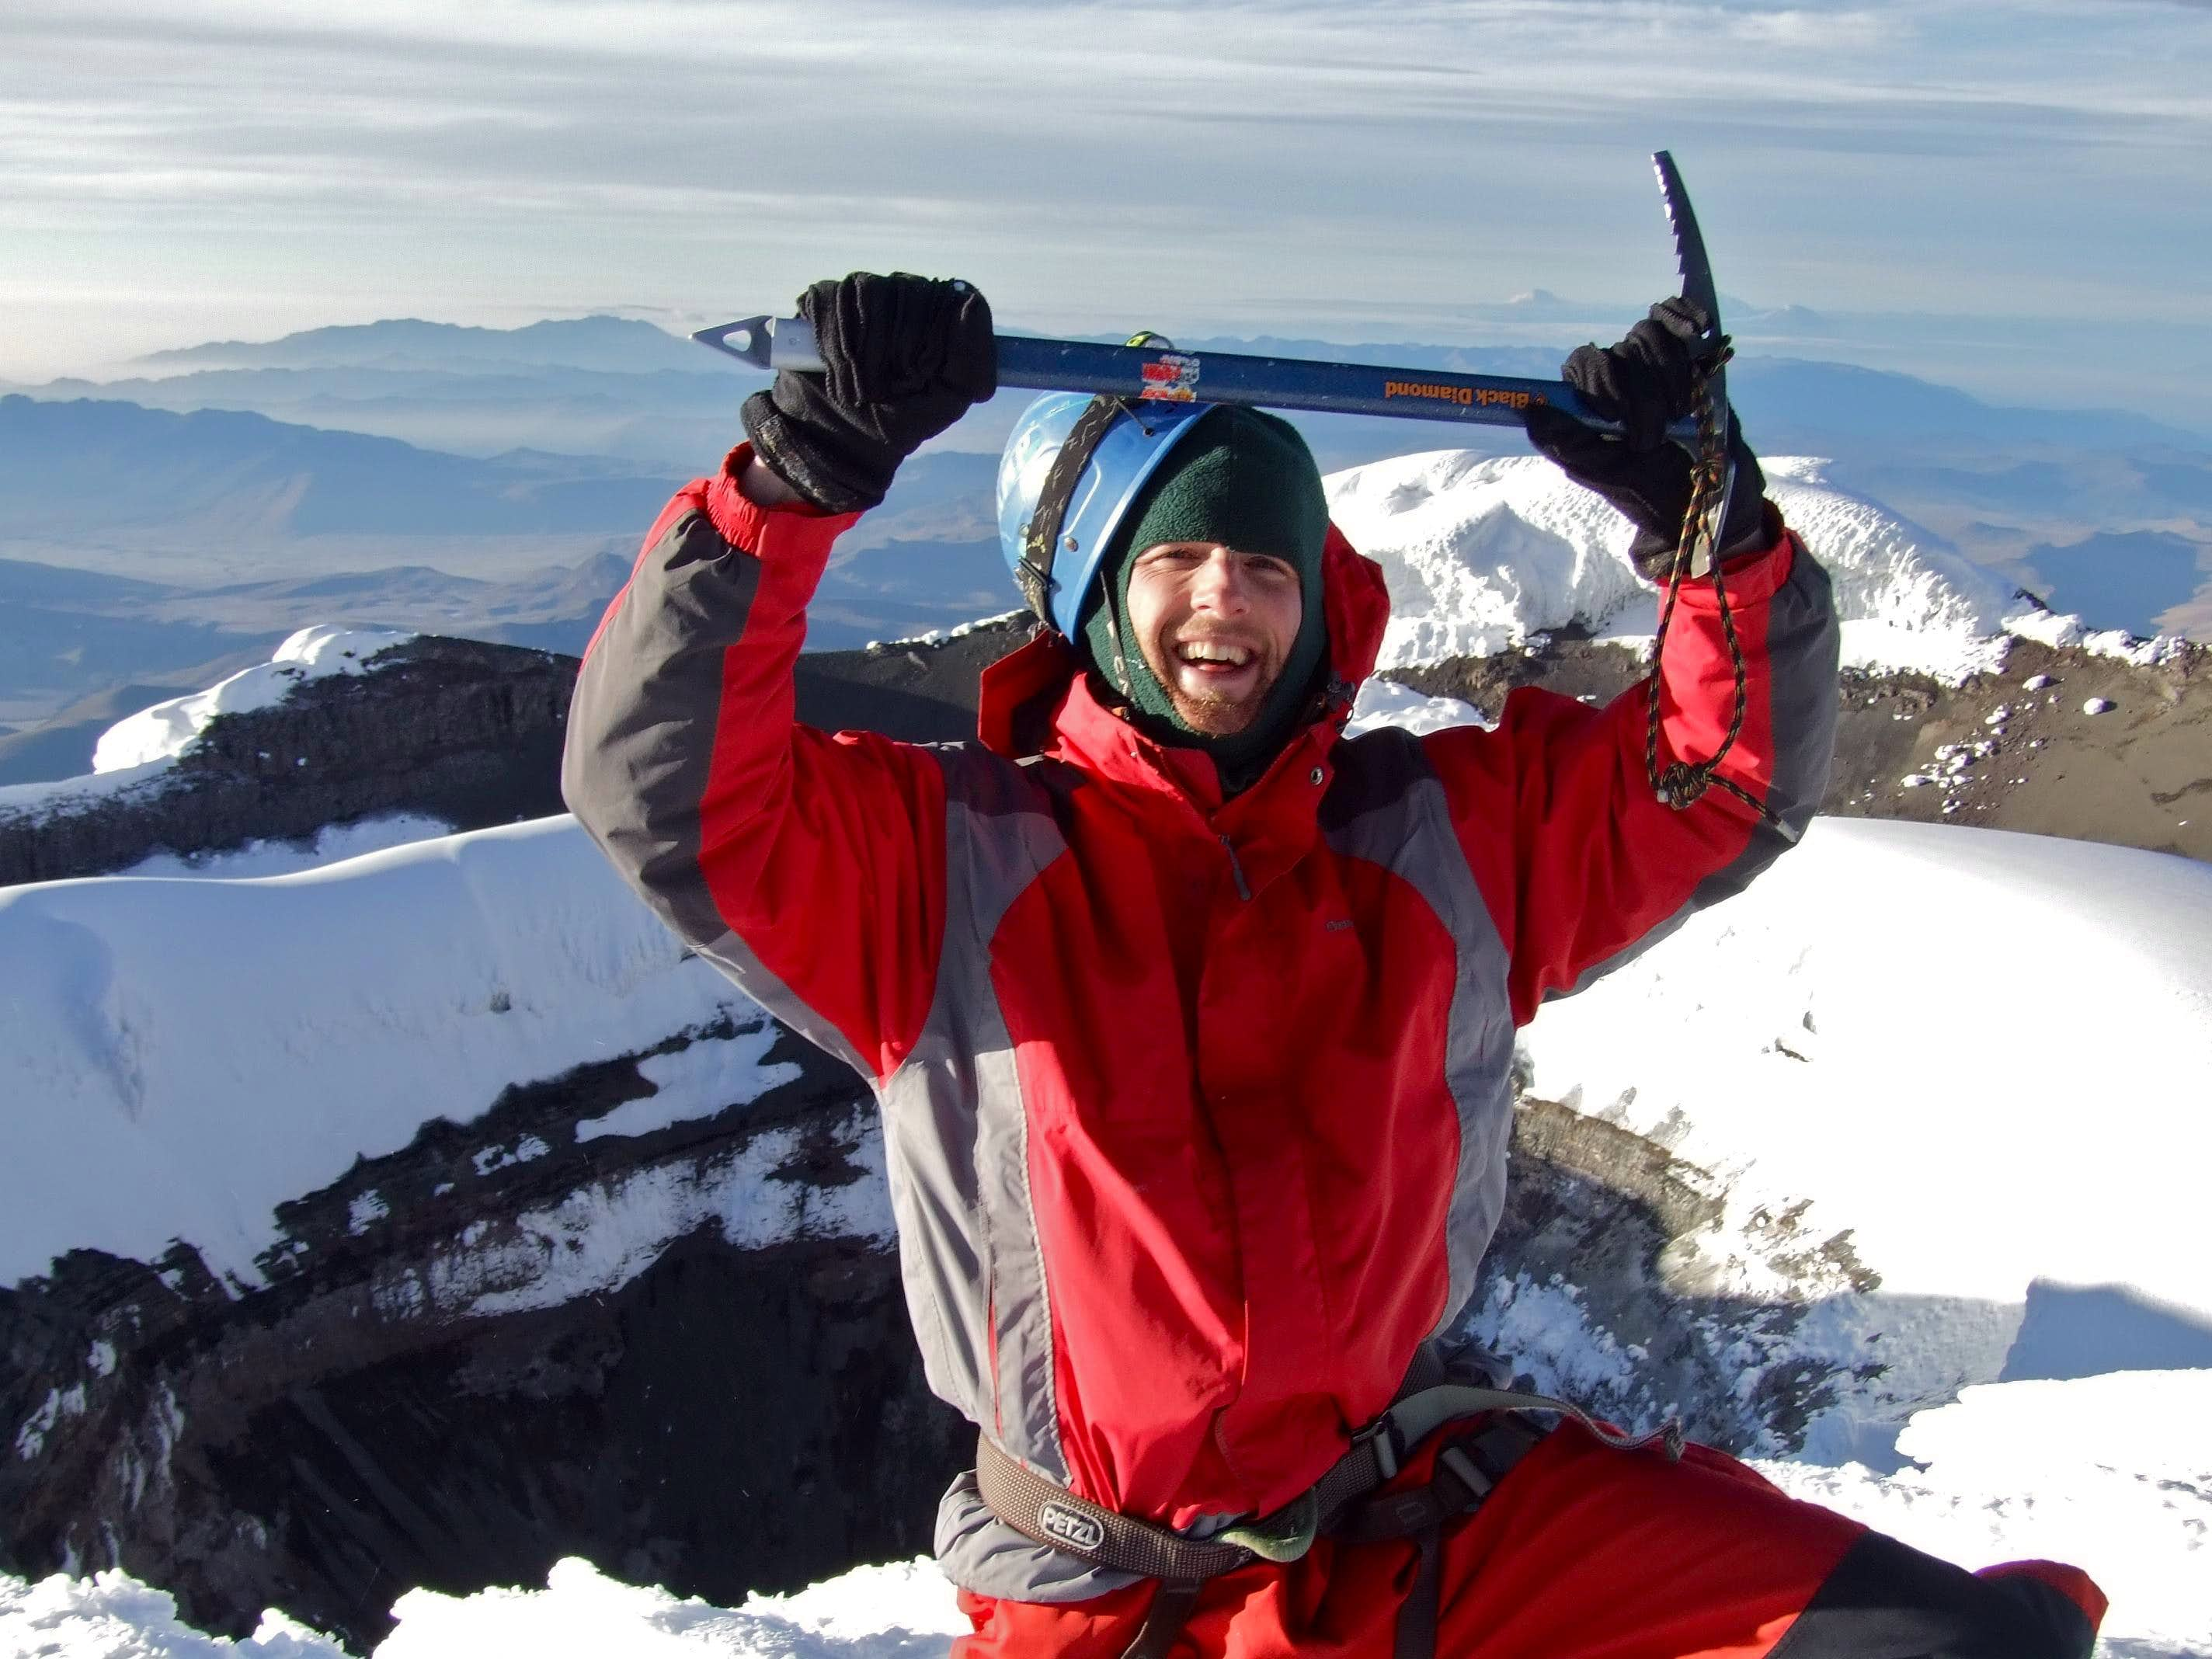 Cotopaxi Summit - 5,897 meters of Daring